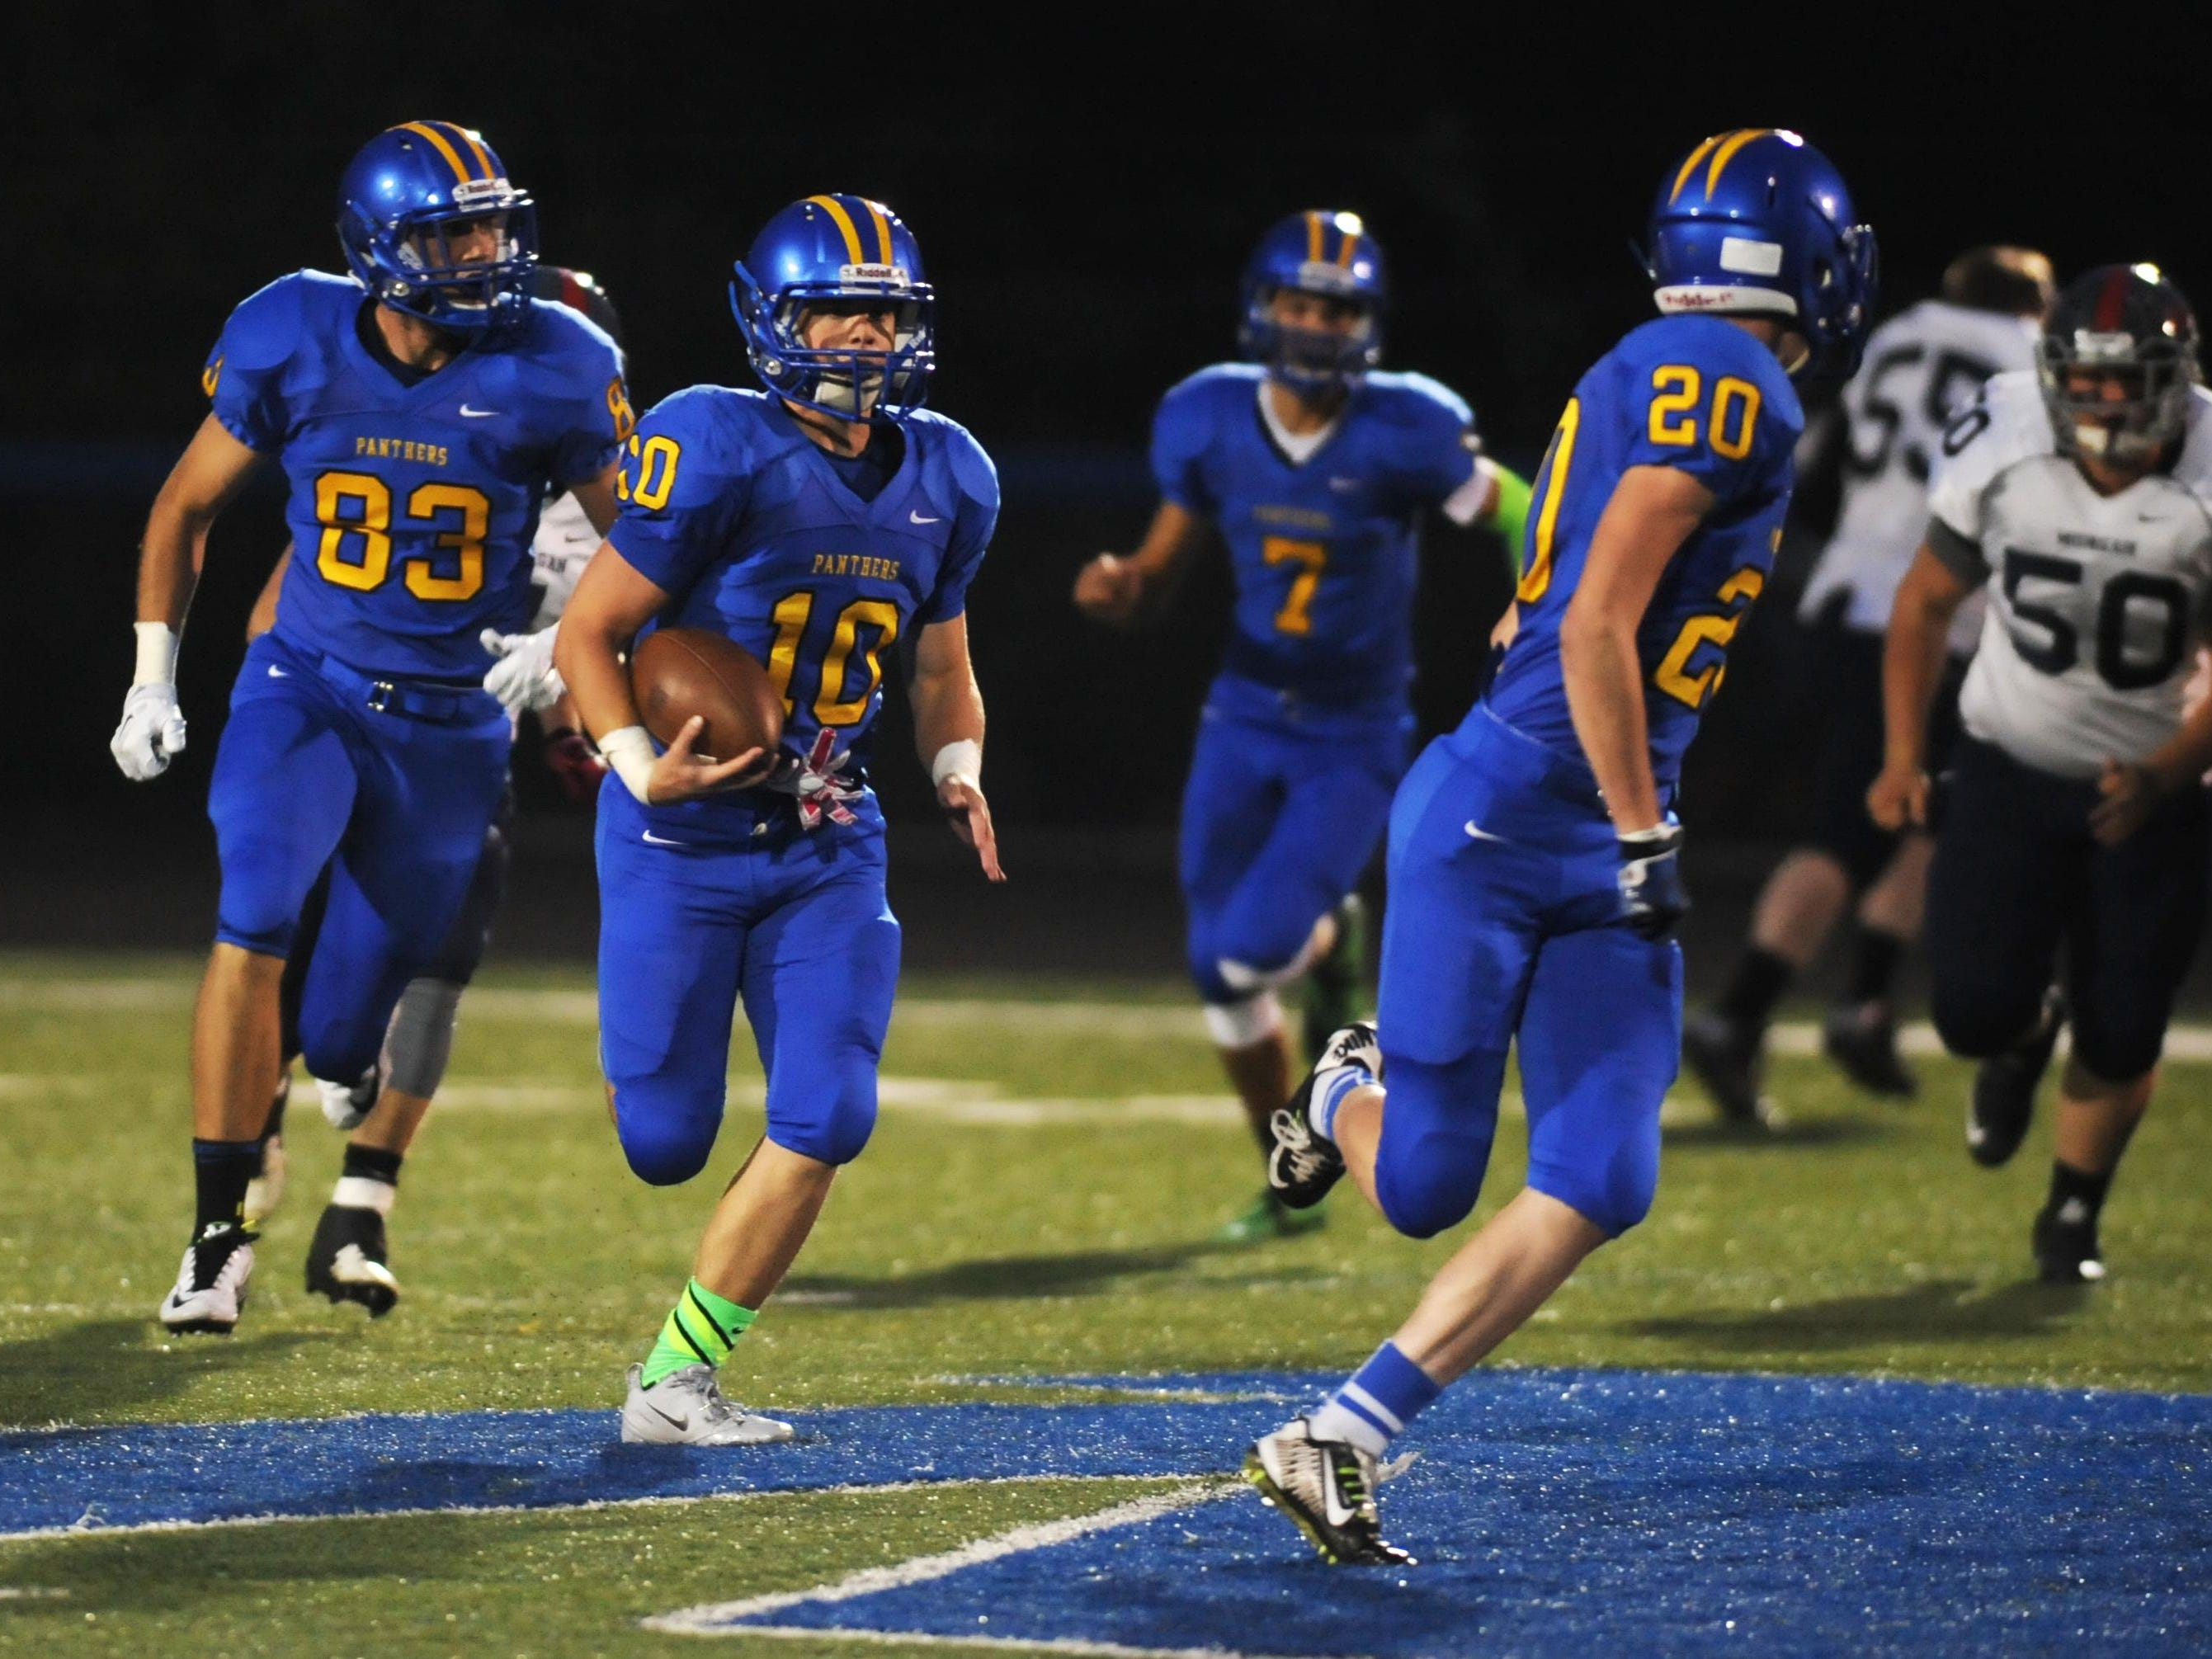 Maysville's Evan Brown carries the ball after a fake punt in the first quarter against Morgan on Friday. The play set up the Panther's first touchdown, and they went on to win 56-7.